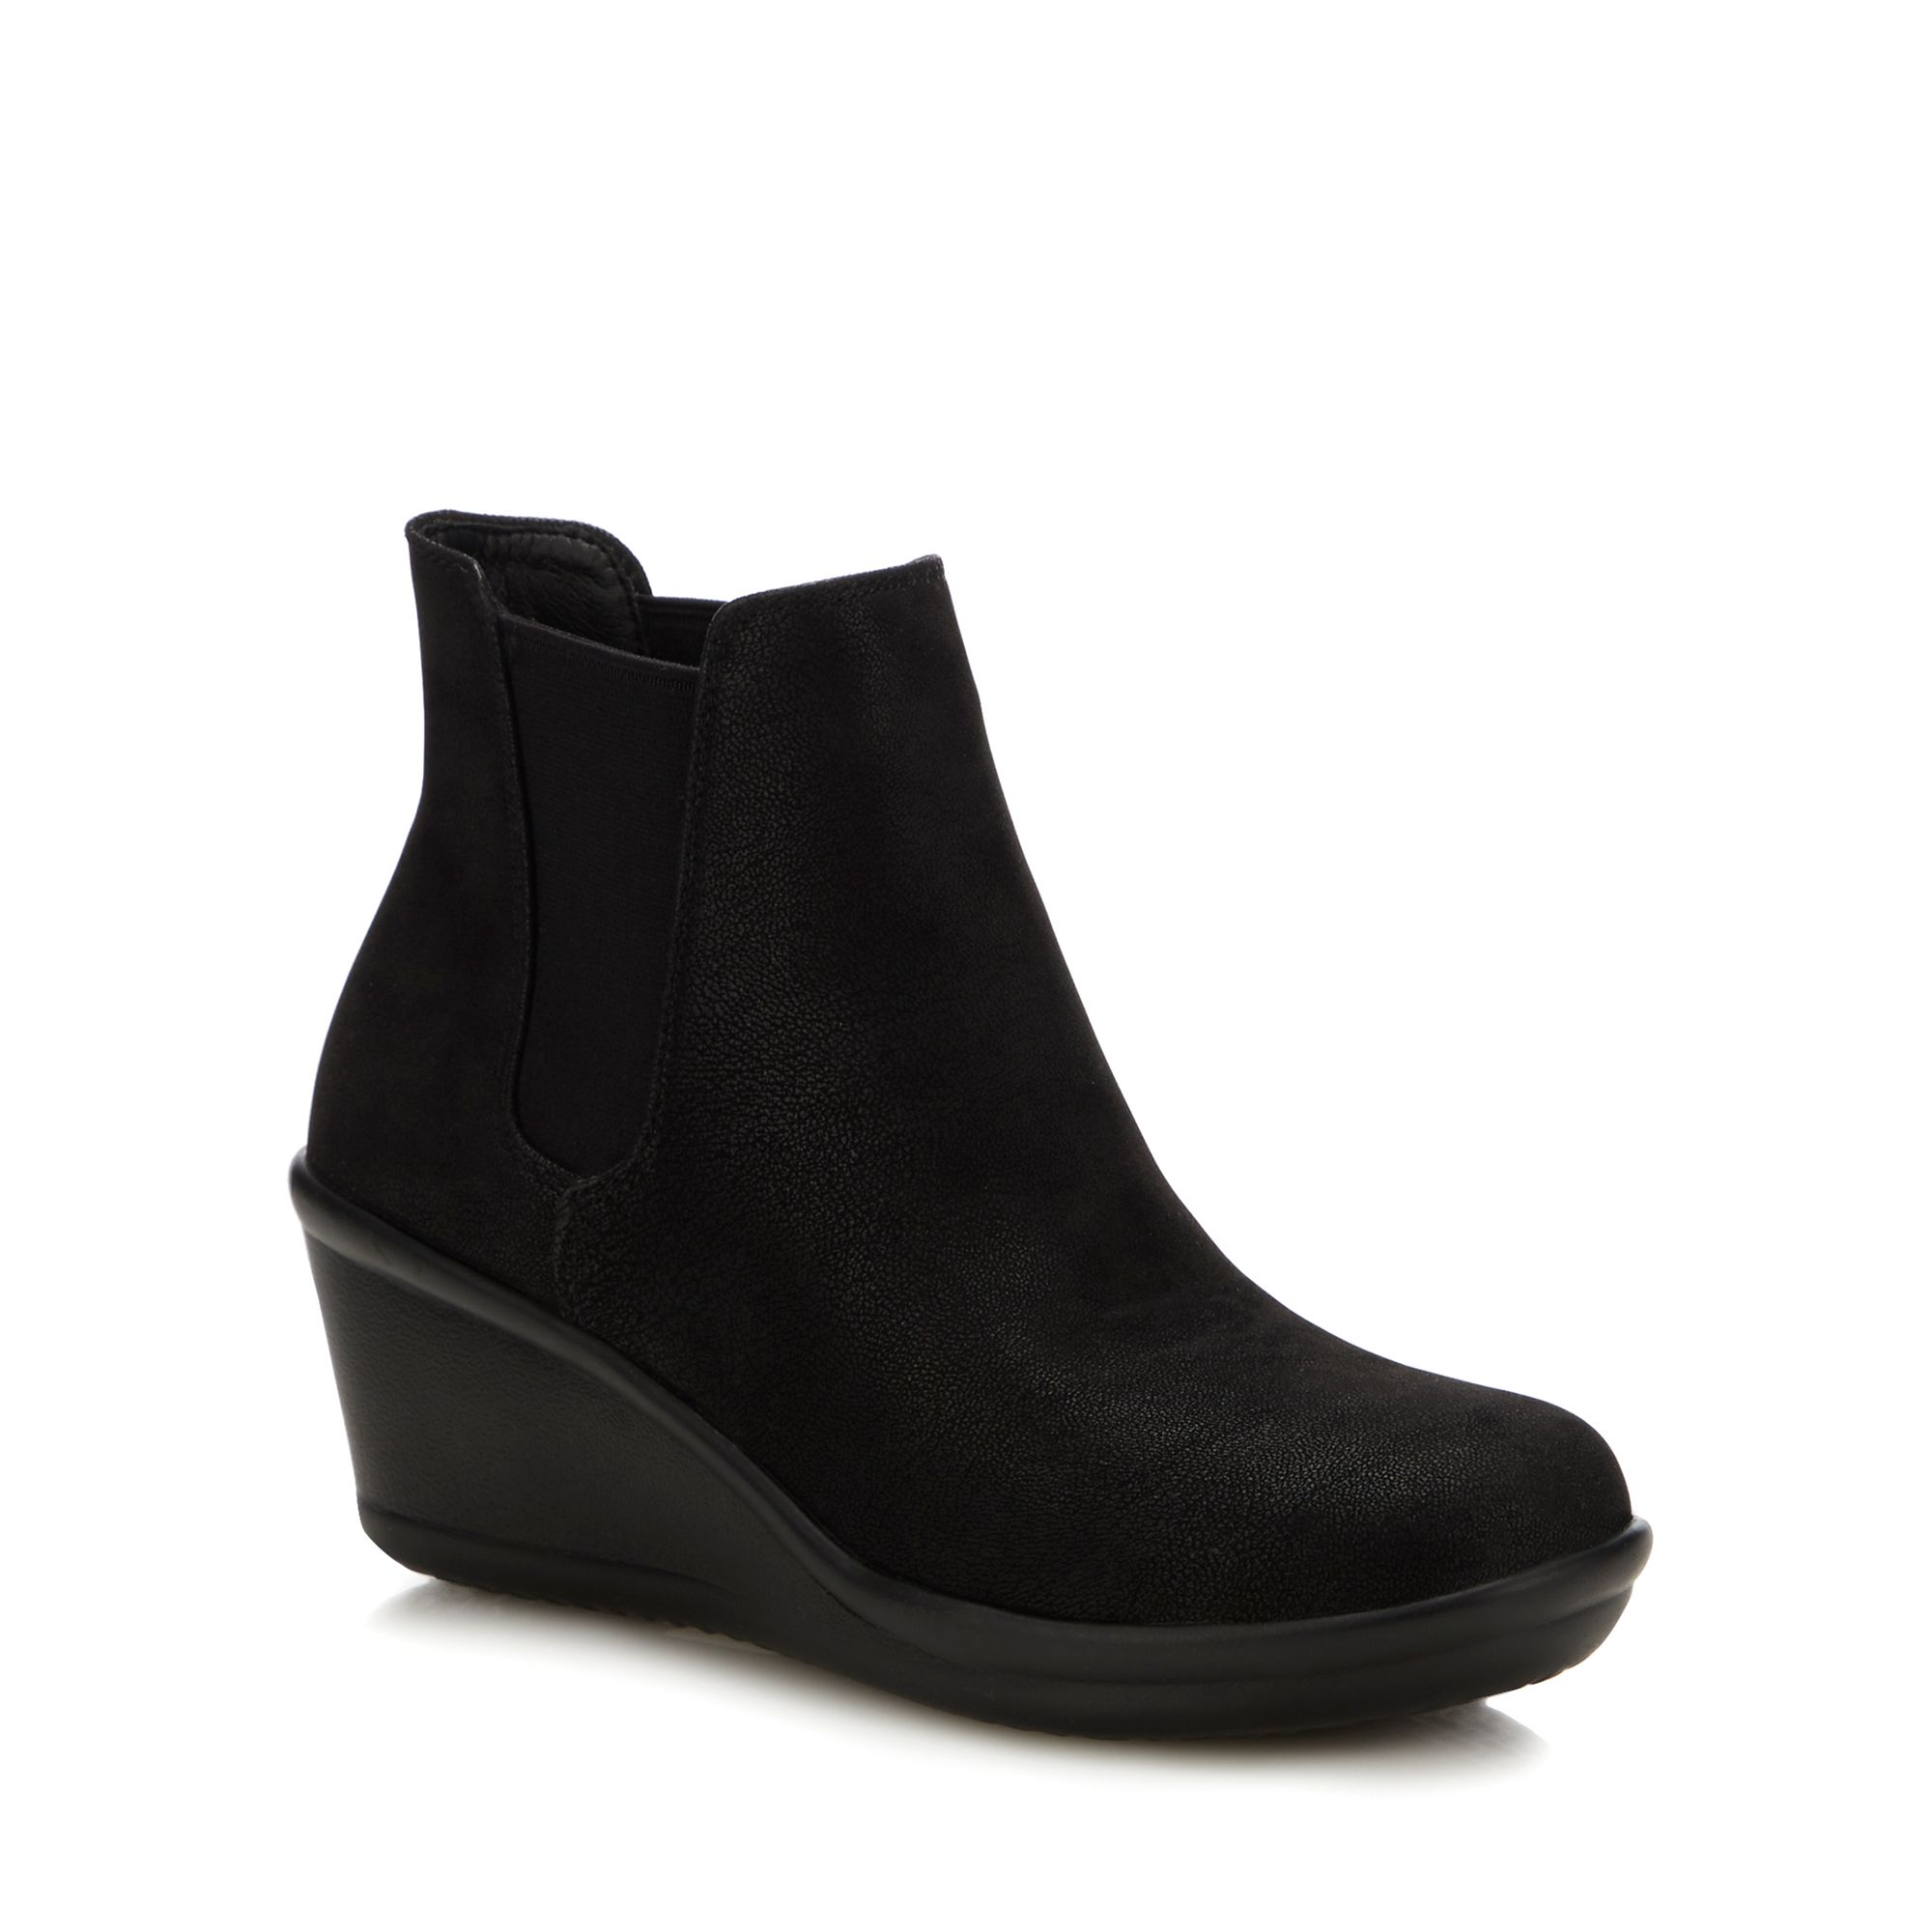 c0168615e1b Details about Skechers Womens Black  Rumblers Beam Me Up  Wedge Heel  Chelsea Boots